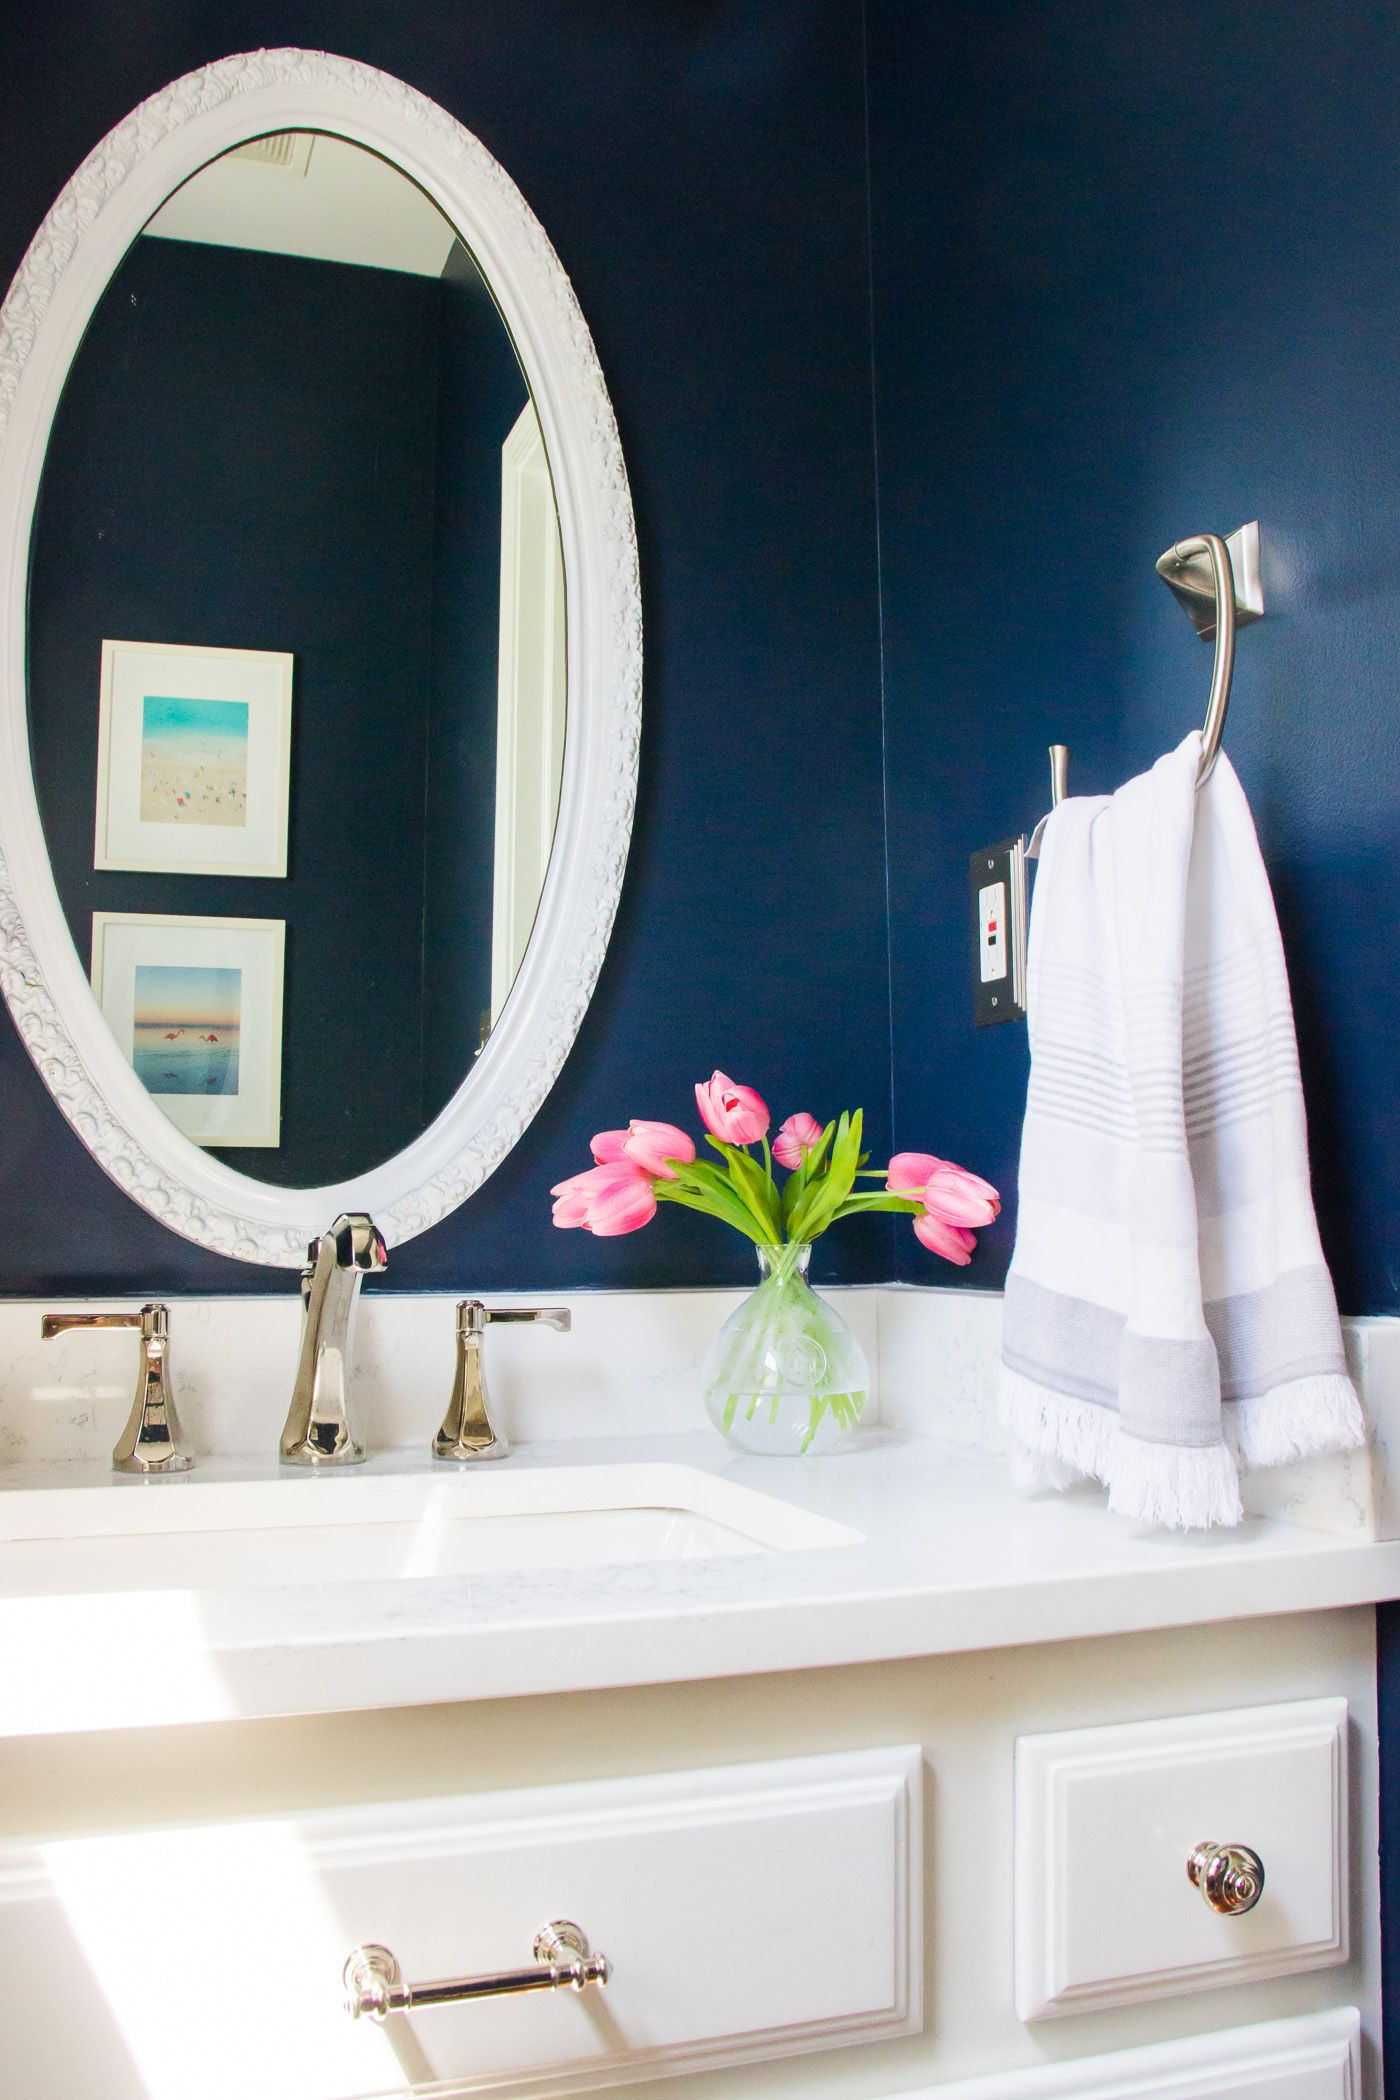 Lessons Learned From Our Powder Room Makeover - Shining On